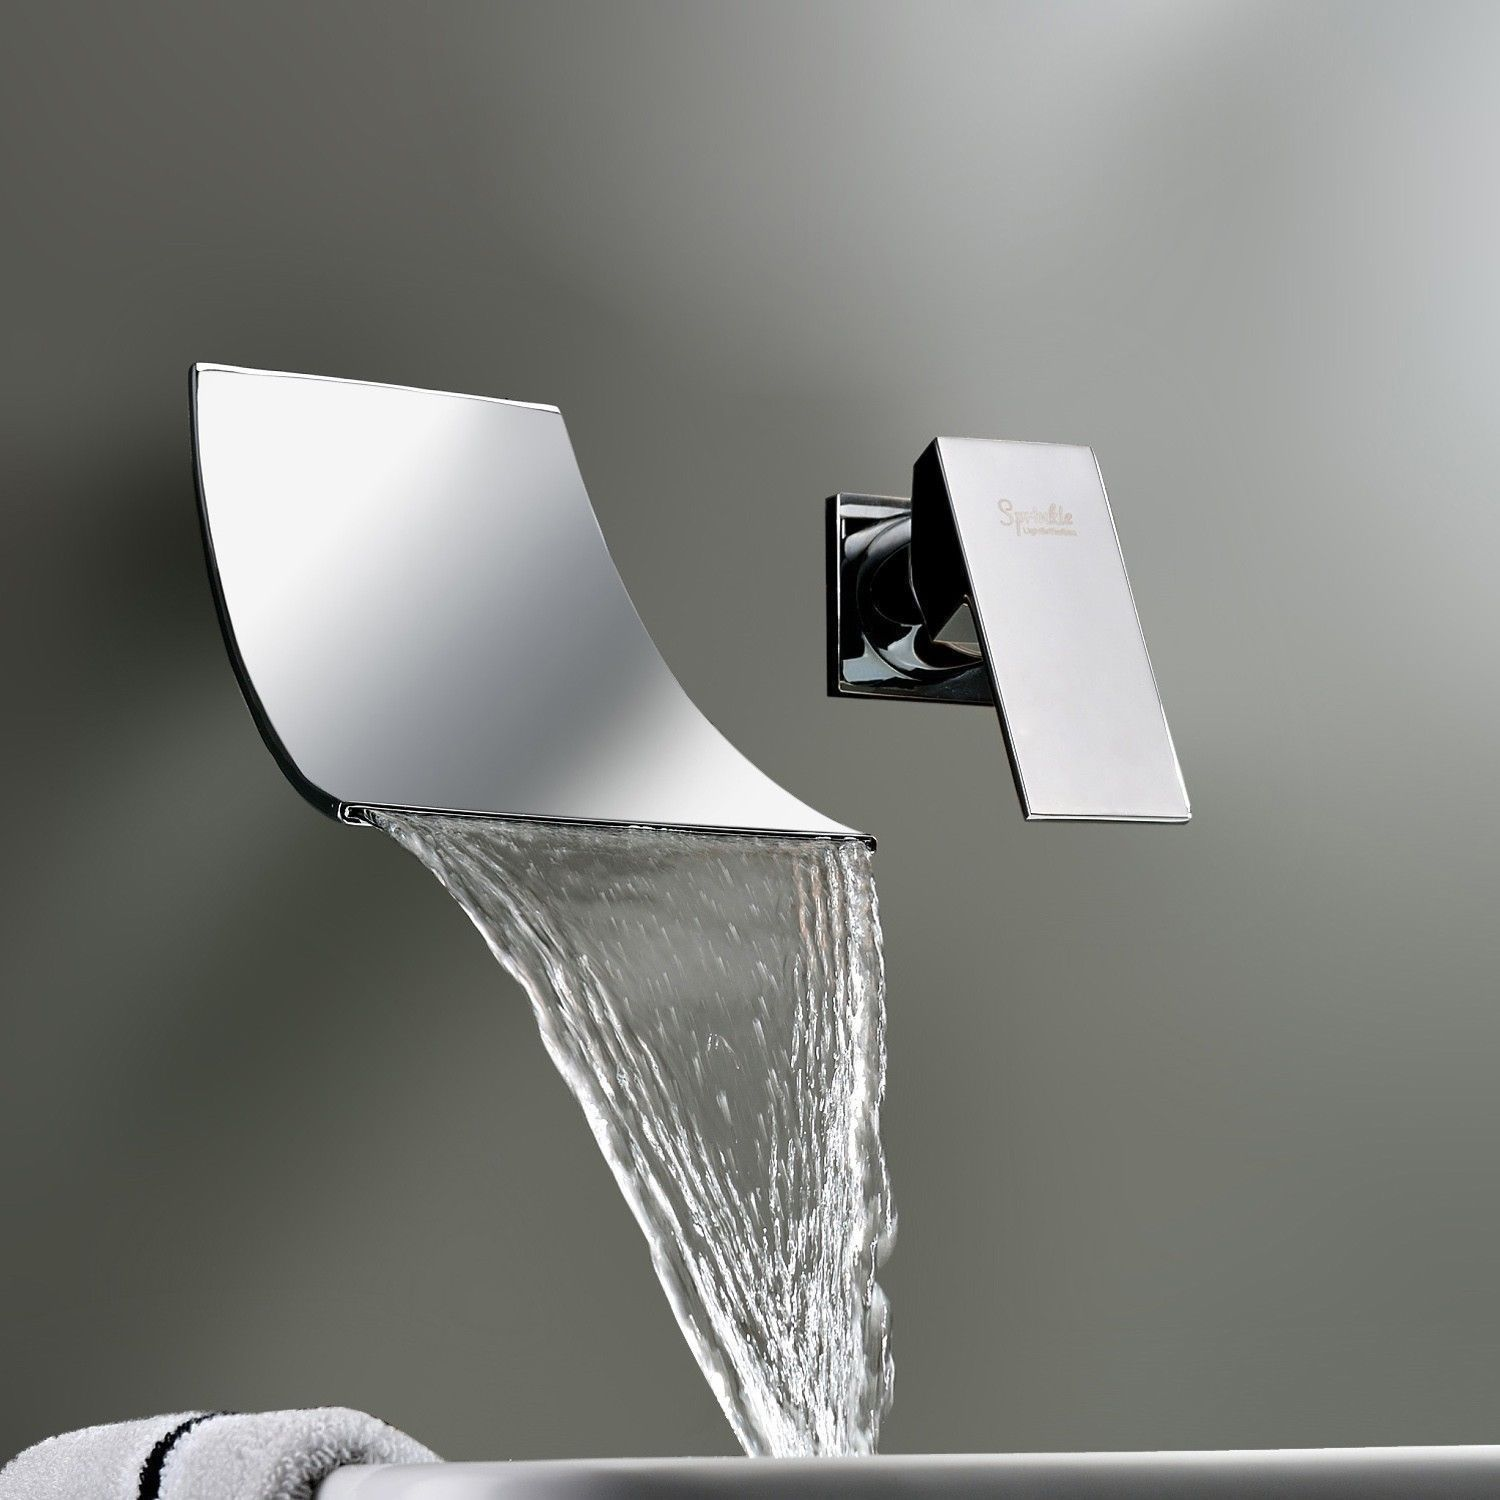 bathtub designer waterfall two mixer bathroom or widespread tub faucet faucets sink rozin handles taps dp bath chrome